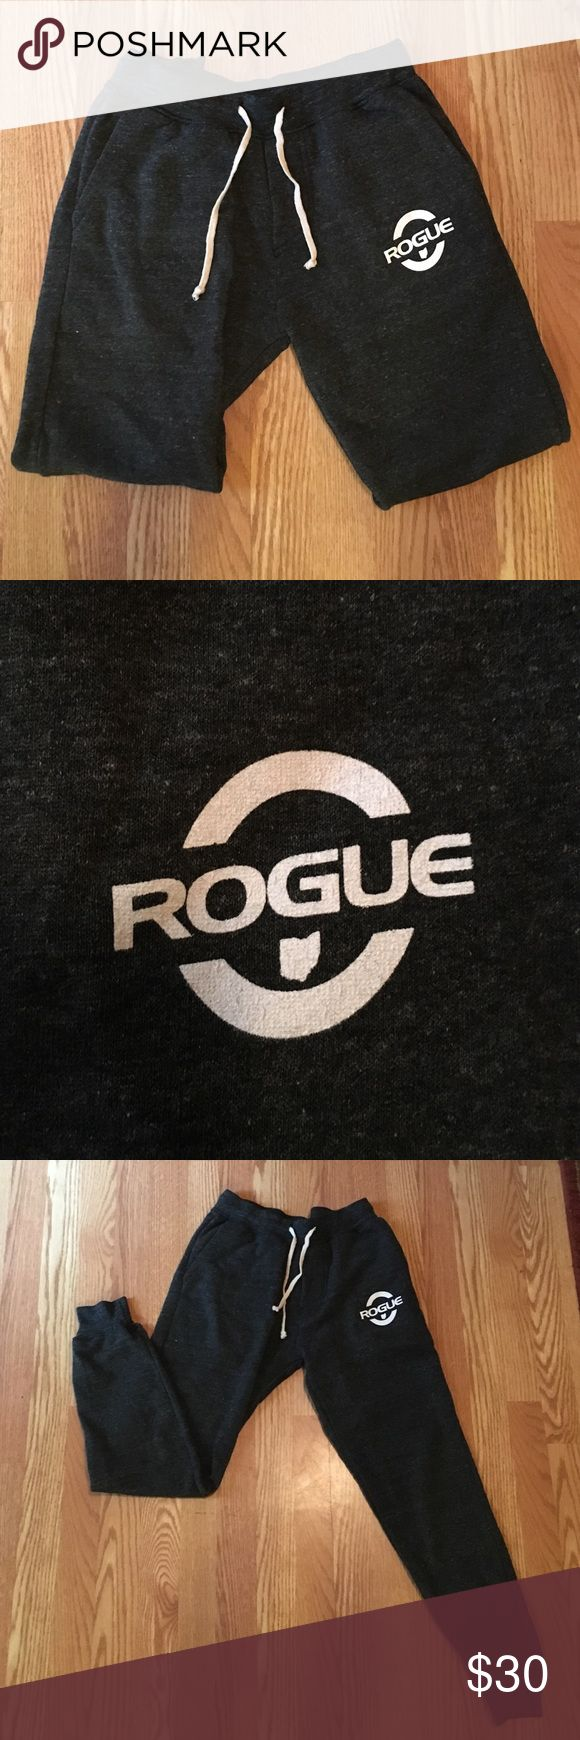 Rogue fitness sweatpants never worn! Brand new without tags. Rogue fitness sweat pants has fleece lining Rogue Fitness Pants Sweatpants & Joggers